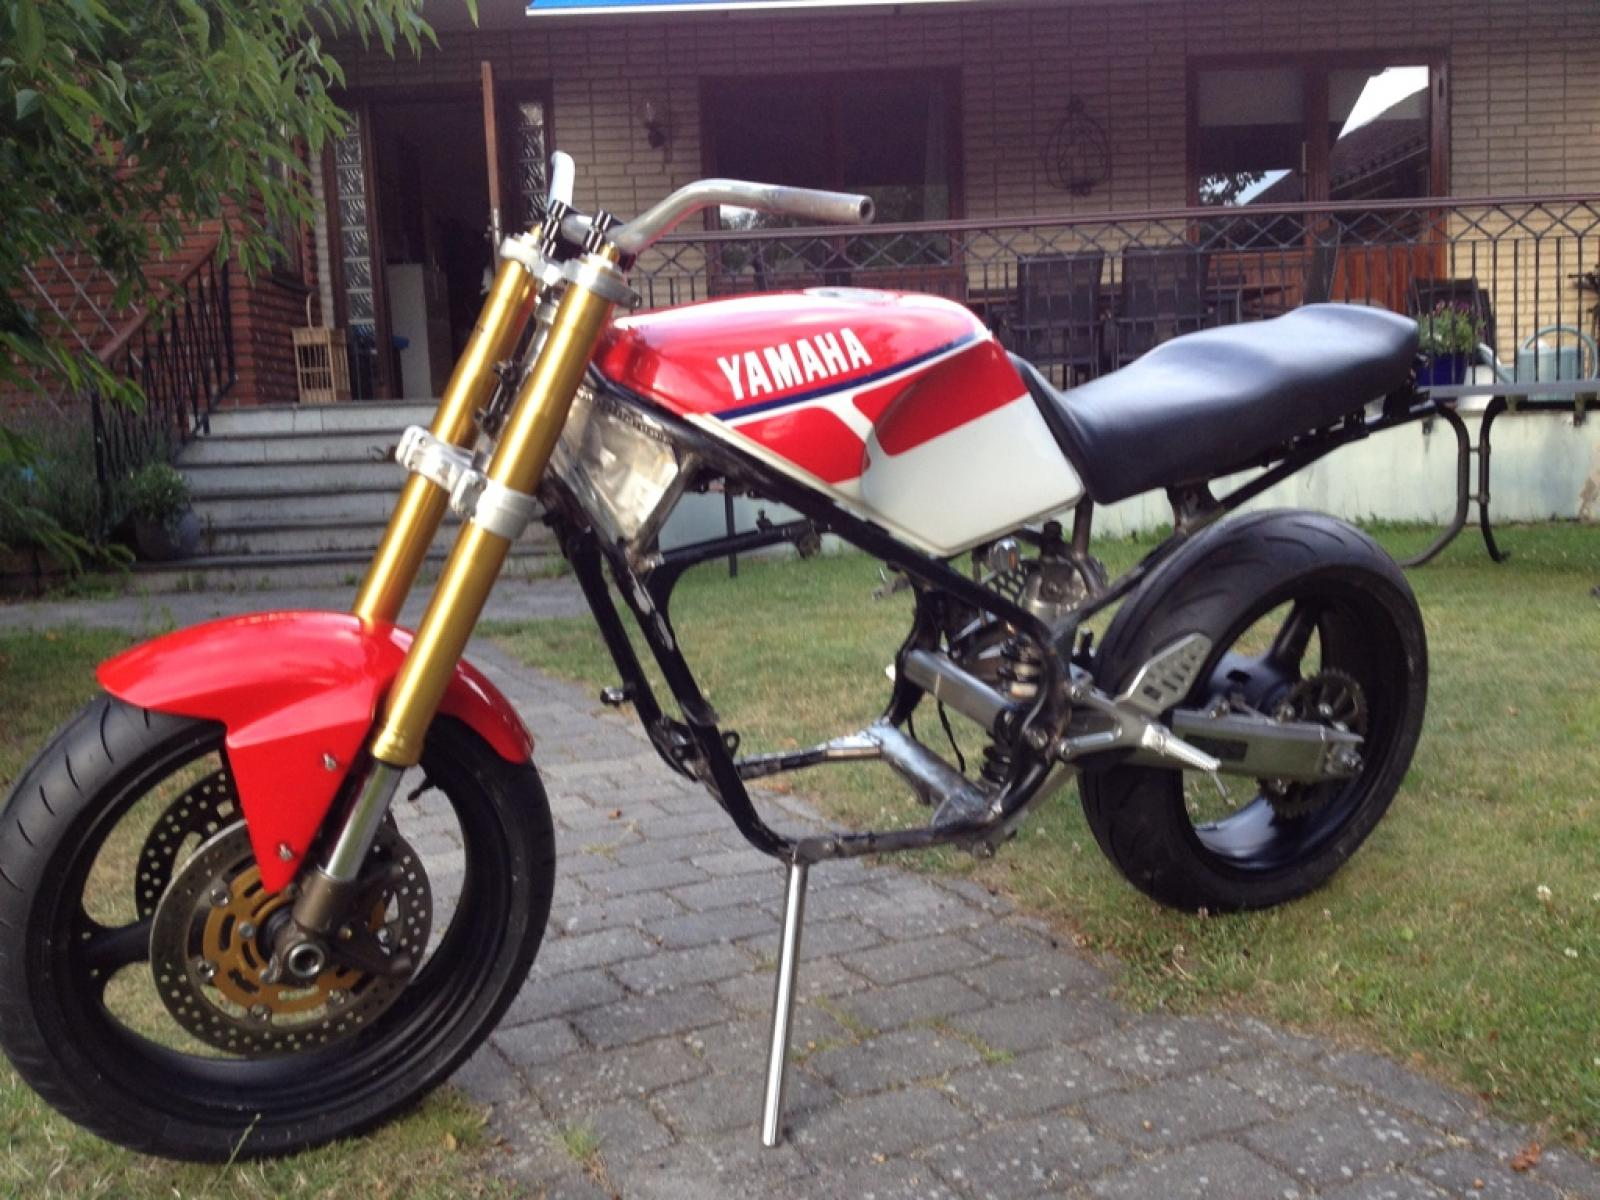 1984 Yamaha RD 350 LC YPVS (reduced effect) - Moto ZombDrive COM